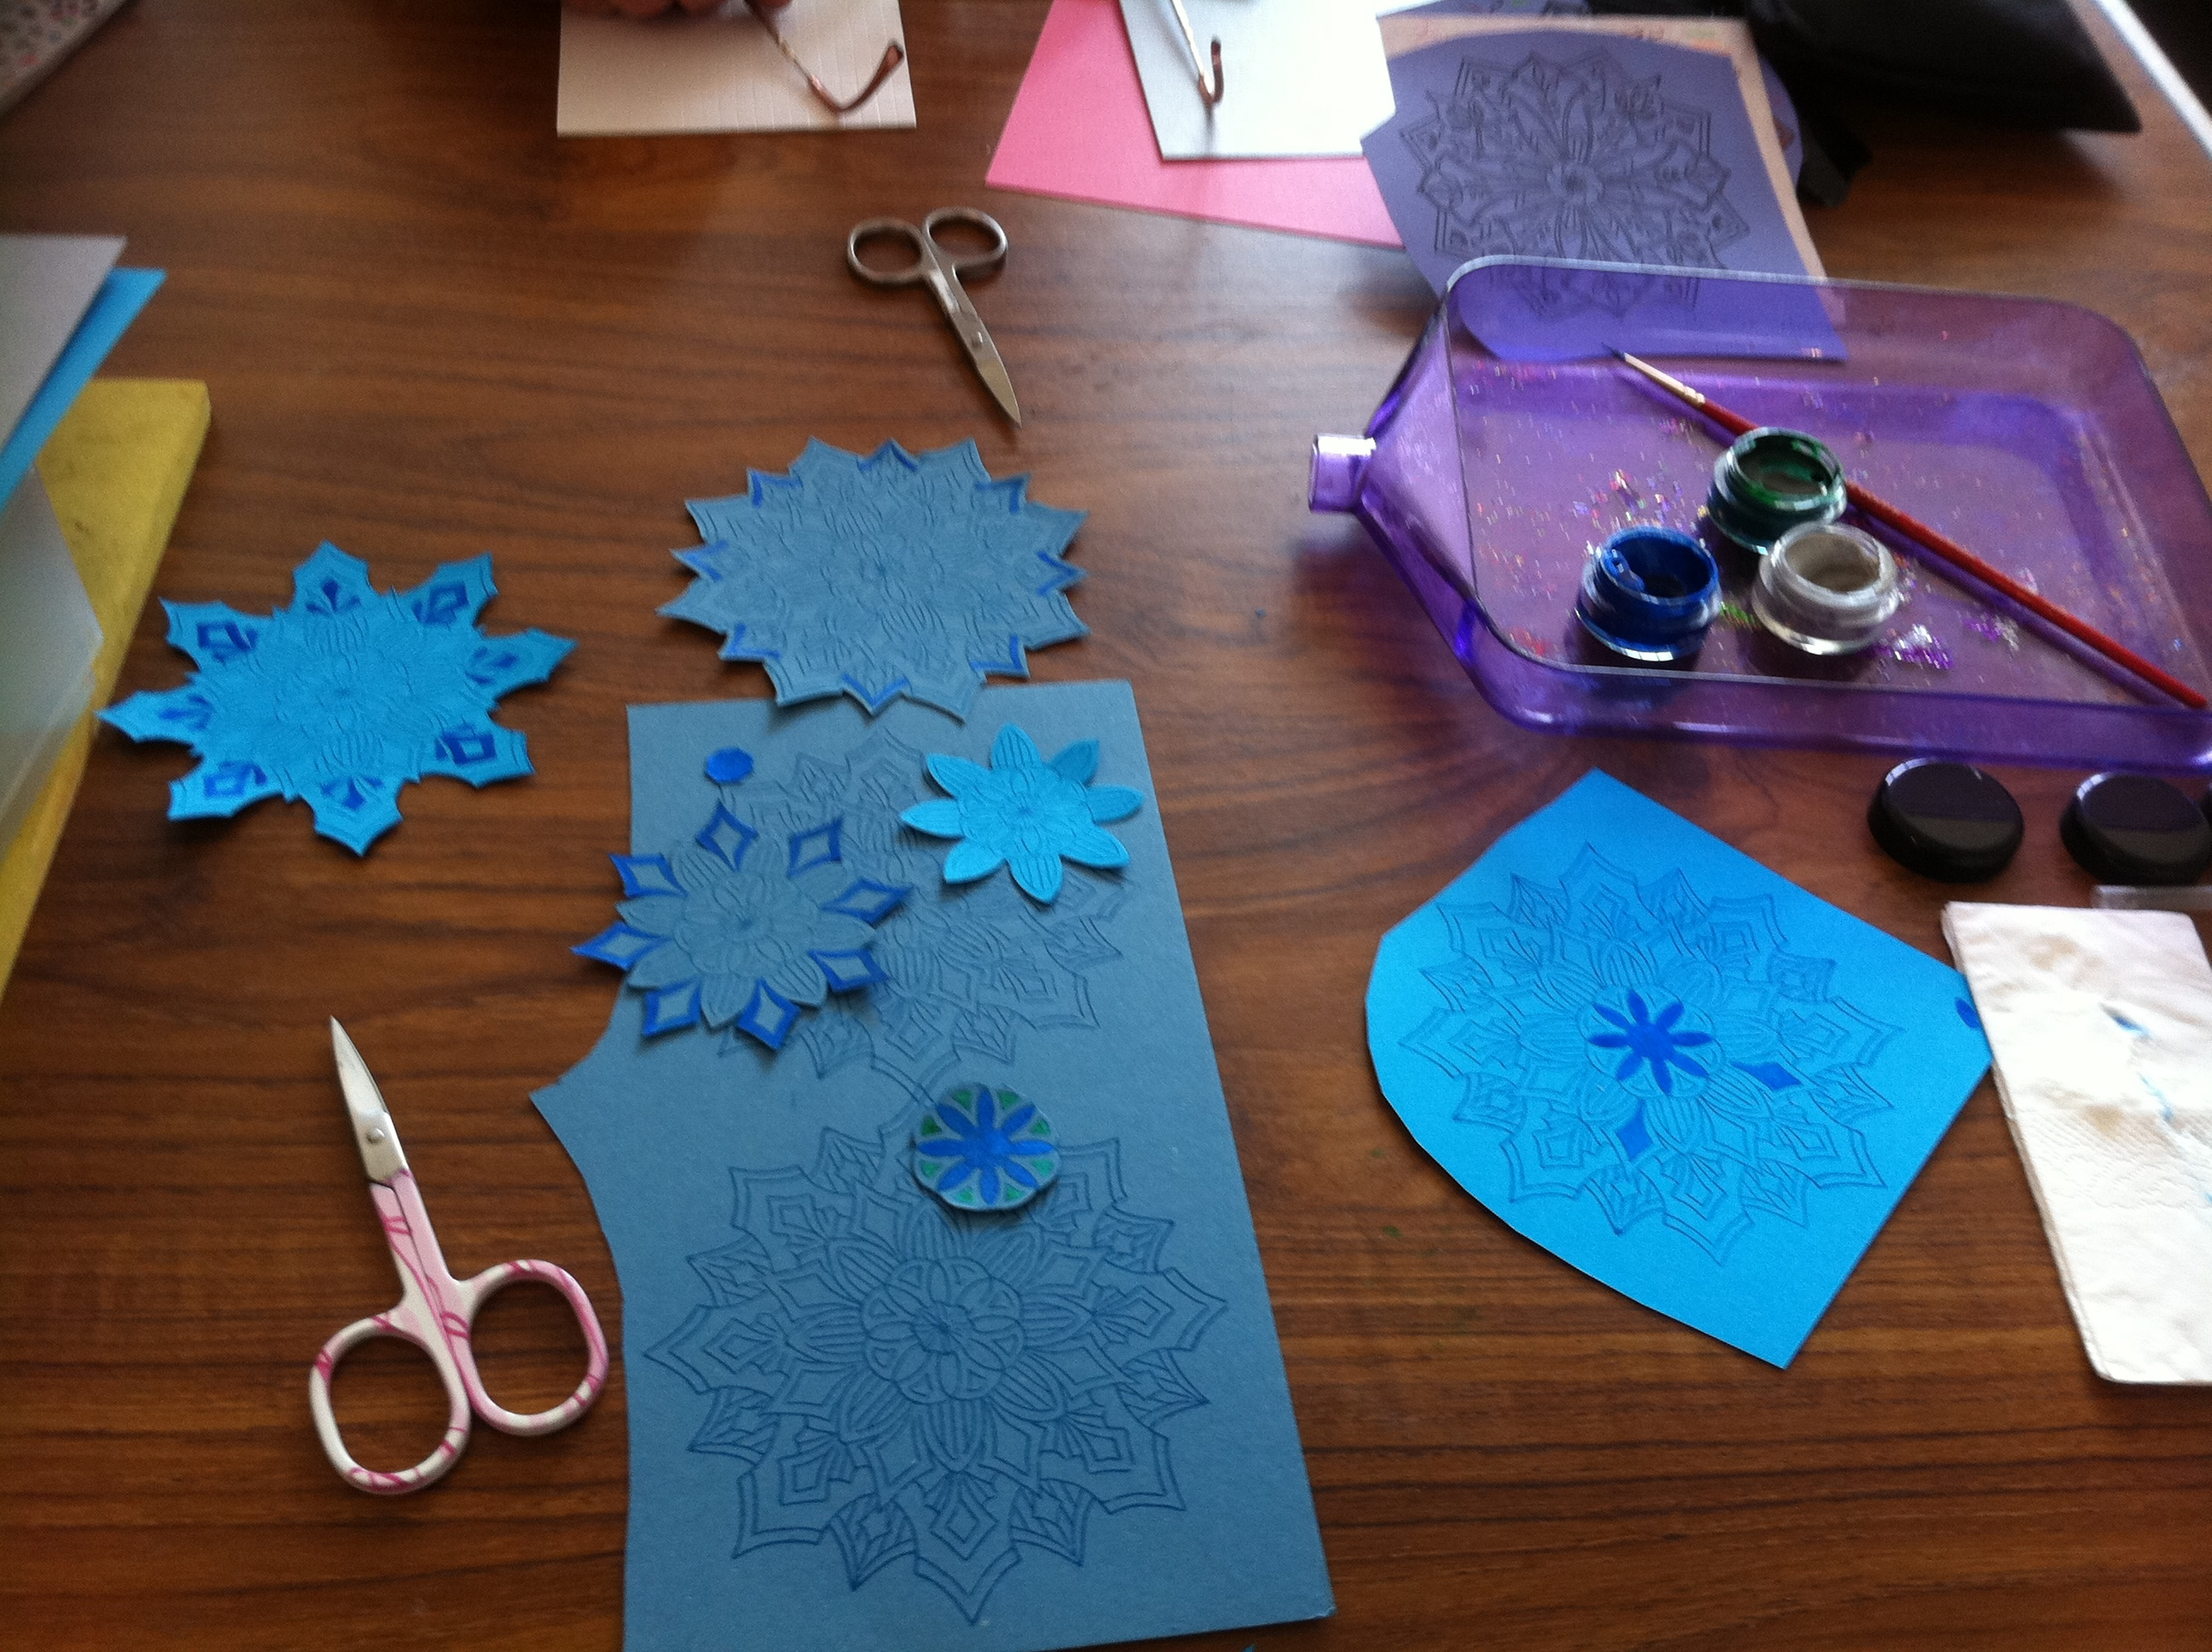 Card Making Ideas - Learn How to Make Handmade Cards